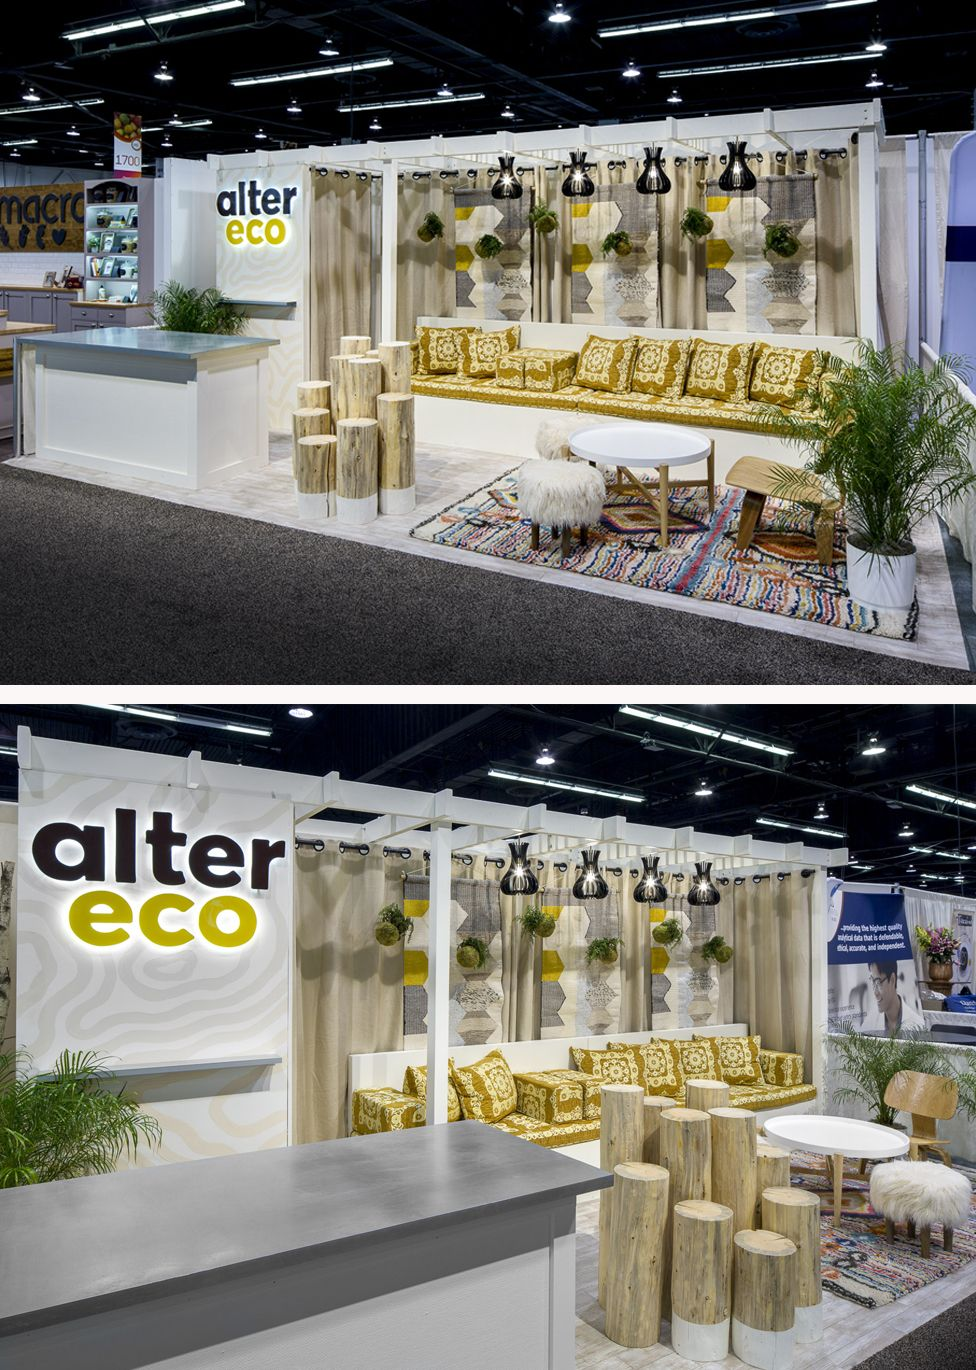 ce5d095175e7 Alter Eco s eclectic trade show booth design was a show stopper at the  Natural Products Expo West show this year. Condit took the company s  previous booth ...